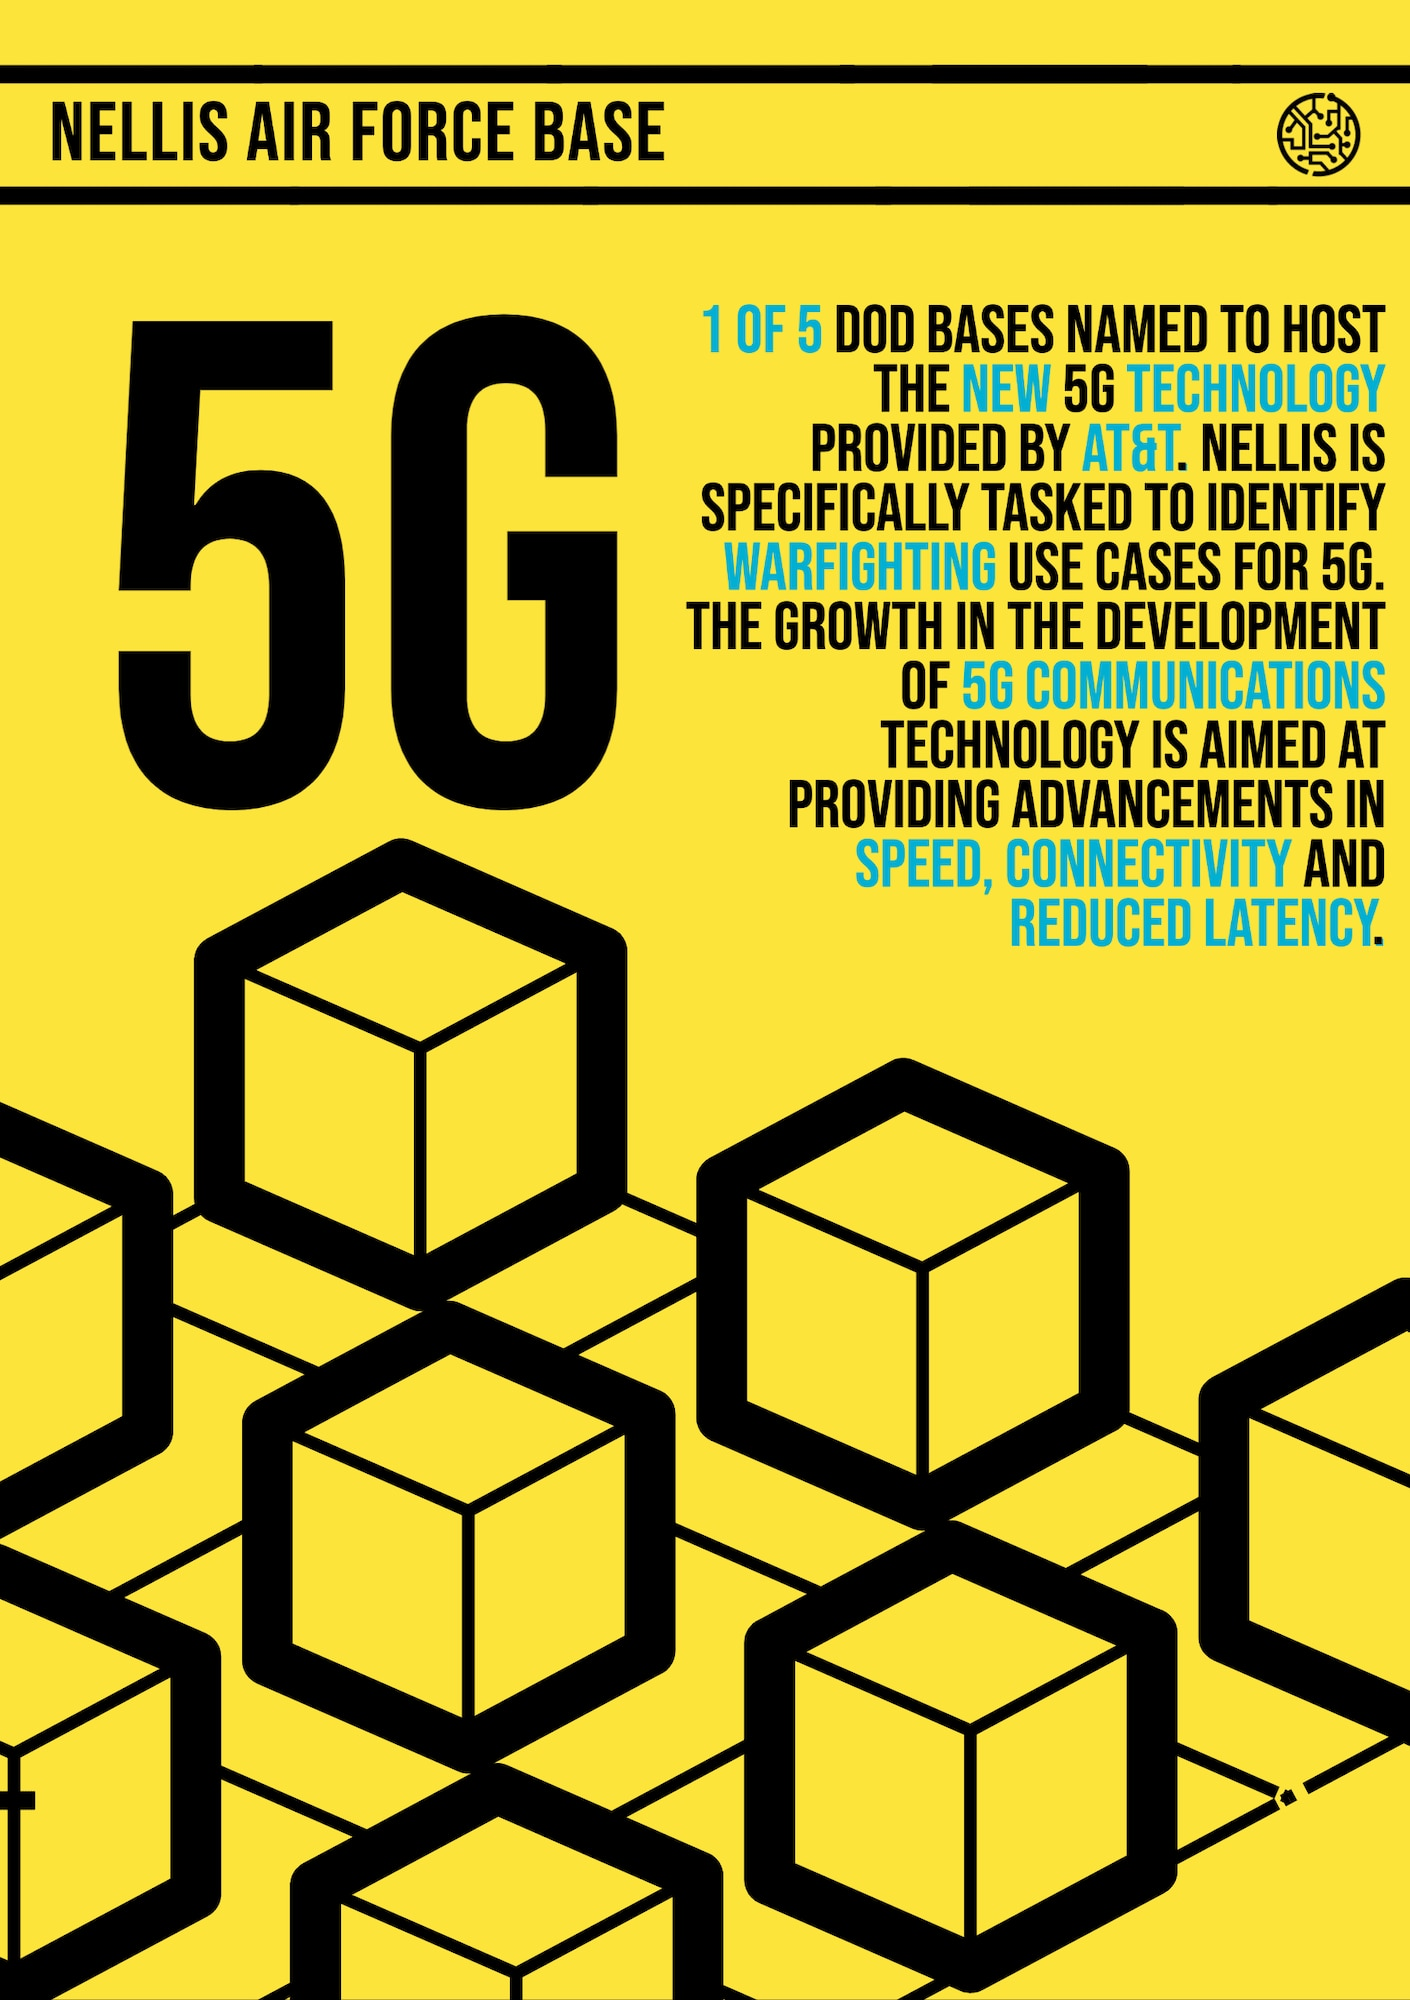 Graphic depicting the designated uses of 5G technology at Nellis AFB.